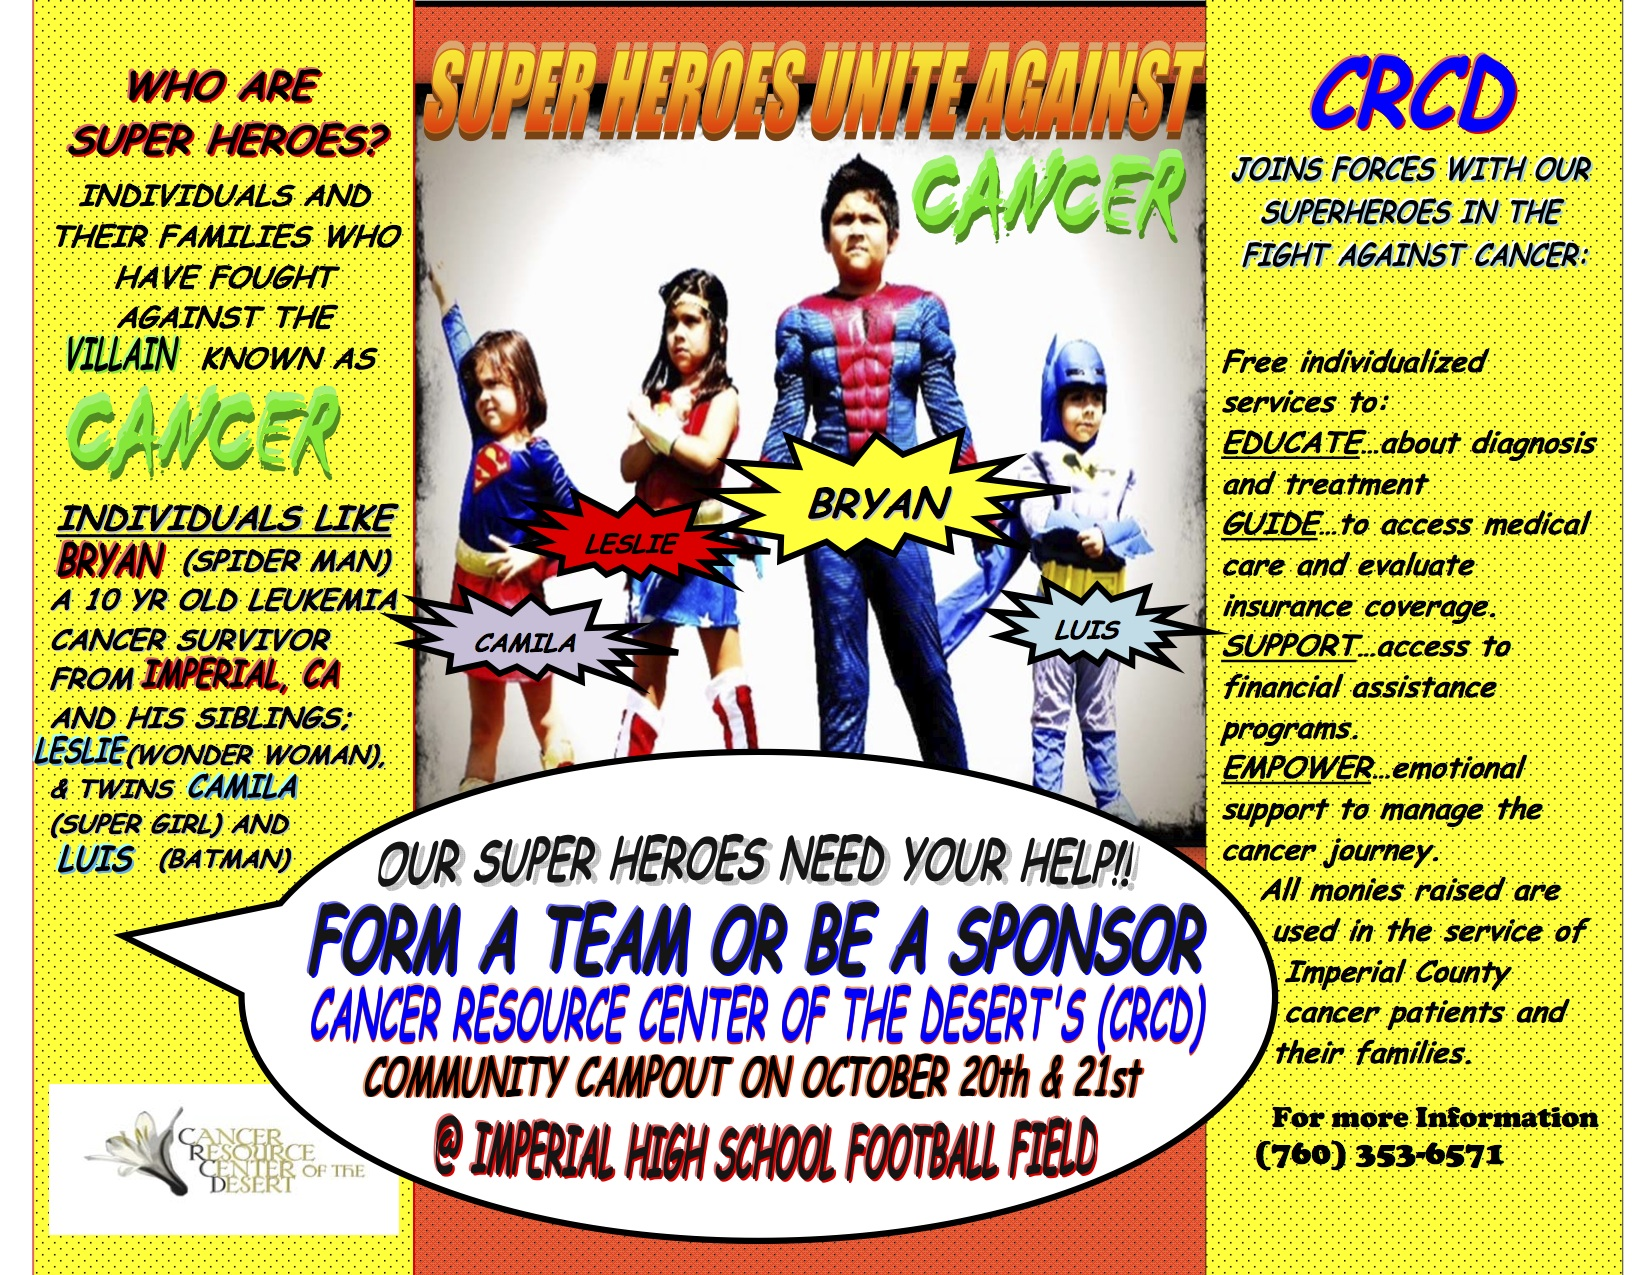 Super Heroes Unite Against Cancer